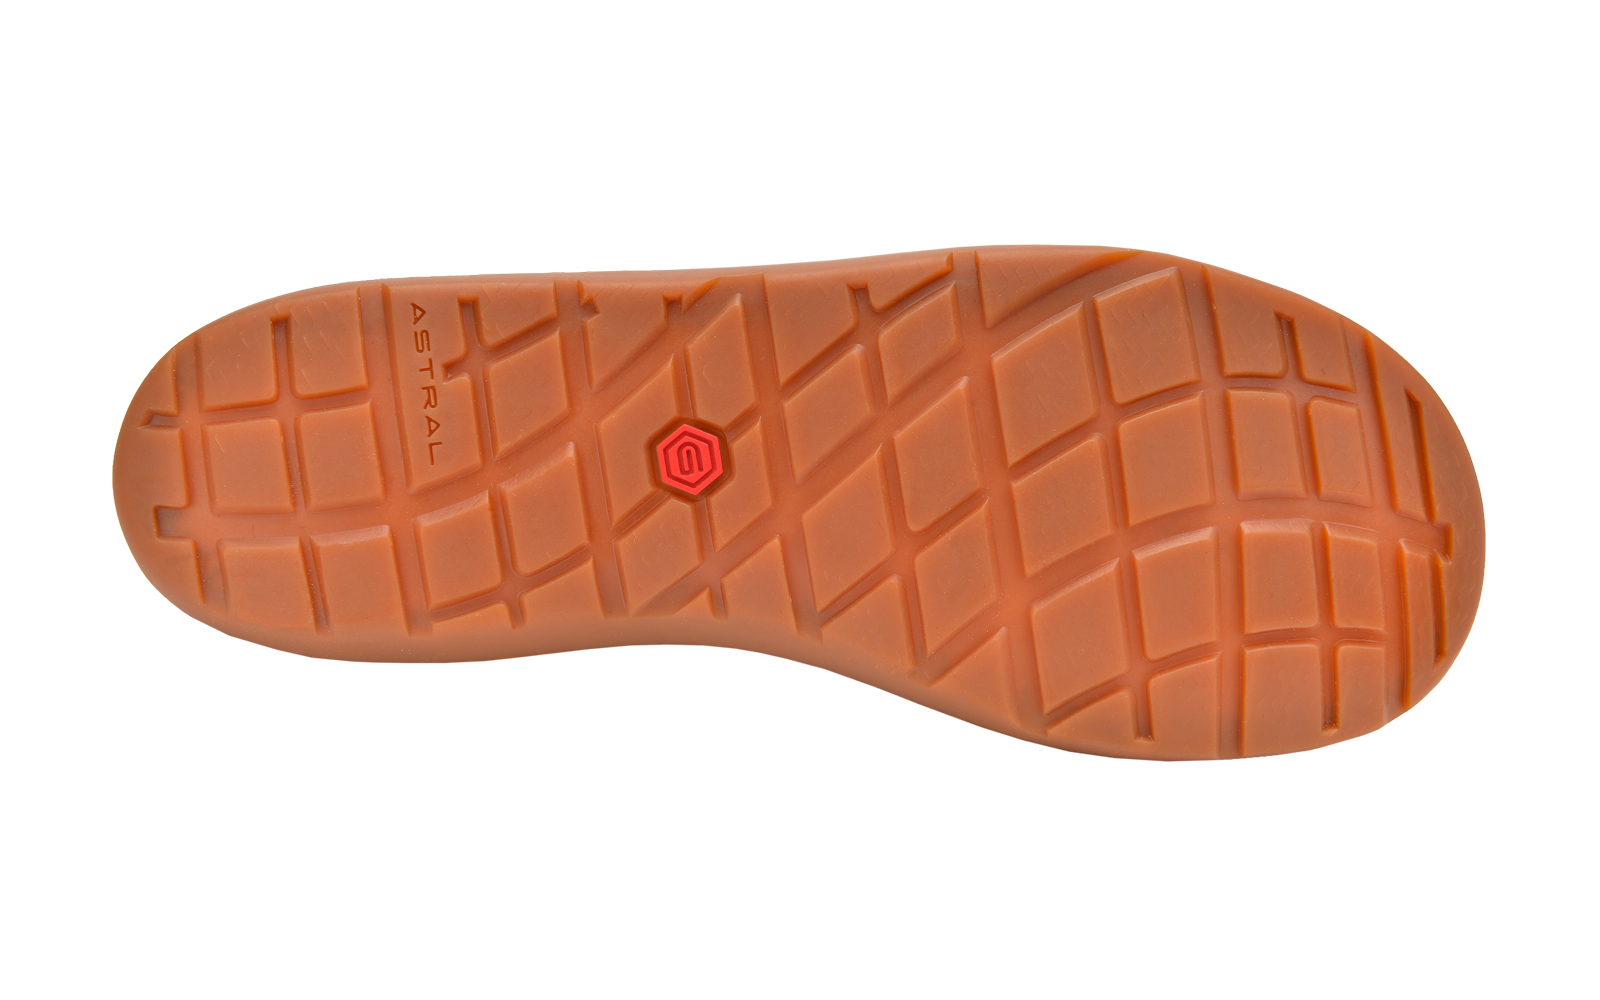 Astral_S20_Ms_Loyak_CedarGreen_Outsole.jpg